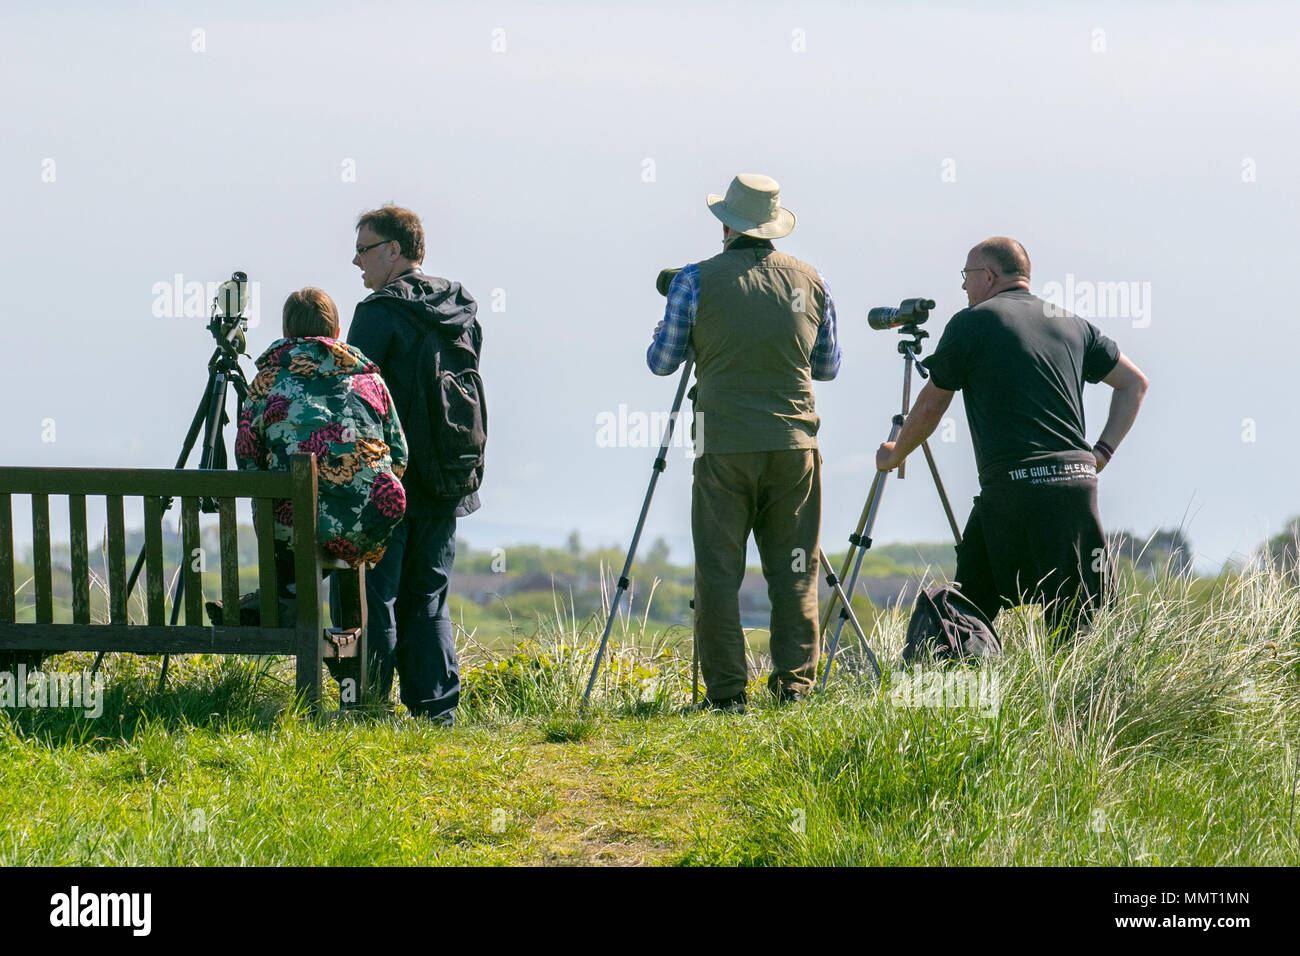 Southport, Merseyside, UK 13/05/2018. UK Weather. Uncommon sighting of Glossy Ibis as birdwatchers or birders descend on the resort to view a pair of these birds on the RSPB Marshside Nature Reserve. Credit: MediaWorldImages/AlamyLiveNews - Stock Image